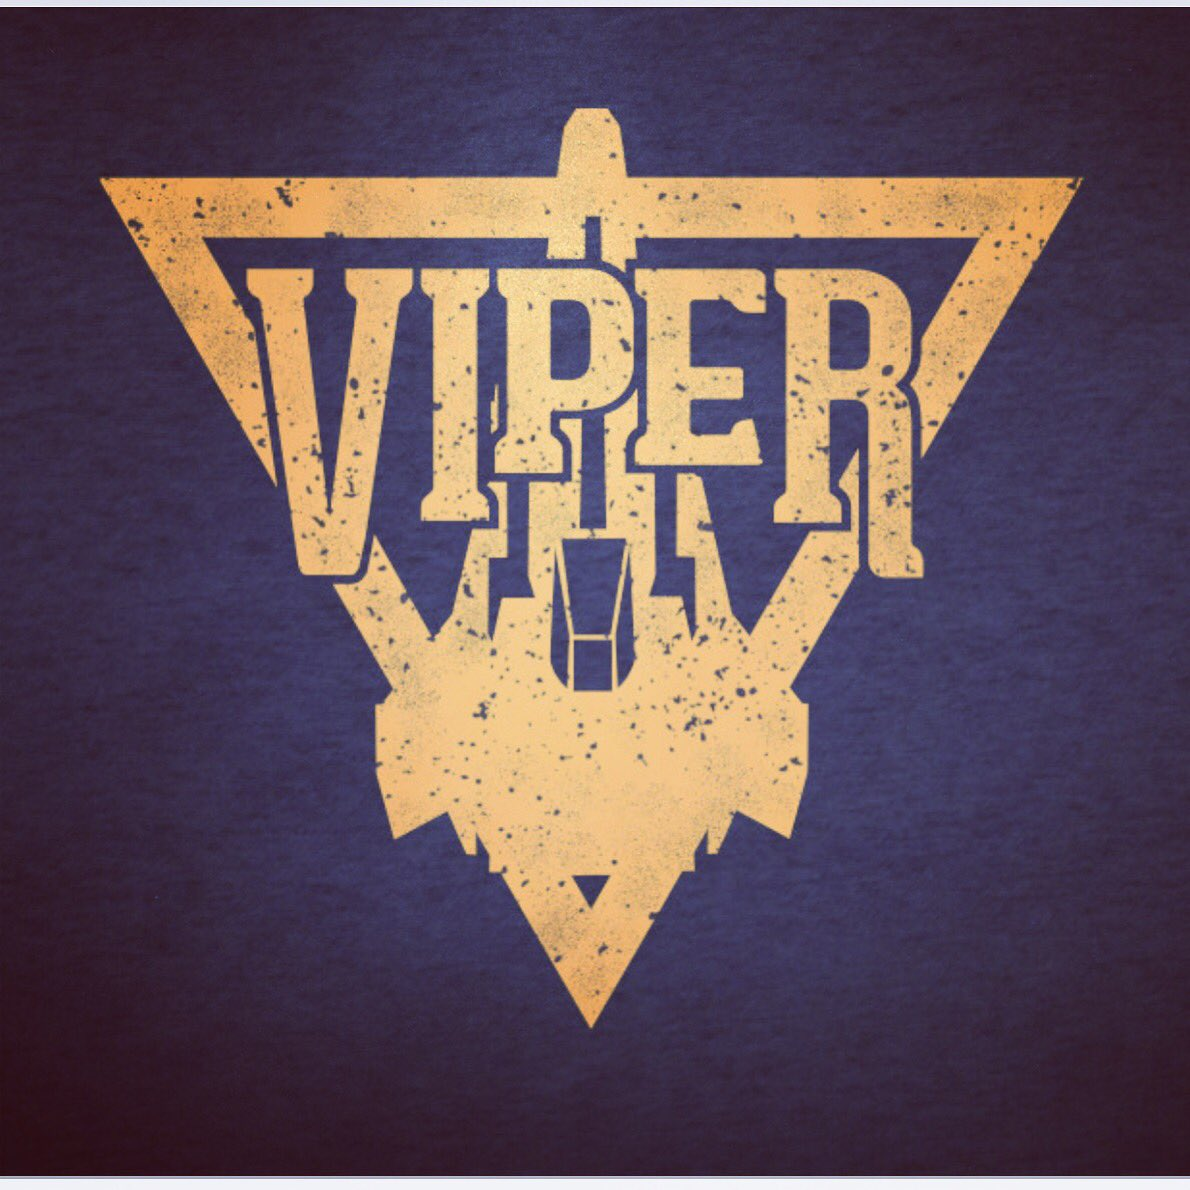 VIPER t-shirt design I made today. #battlestargalactica forever. Get it at https://t.co/Hee5HoZfUL our @teepublic store https://t.co/mQRjAu3Nor